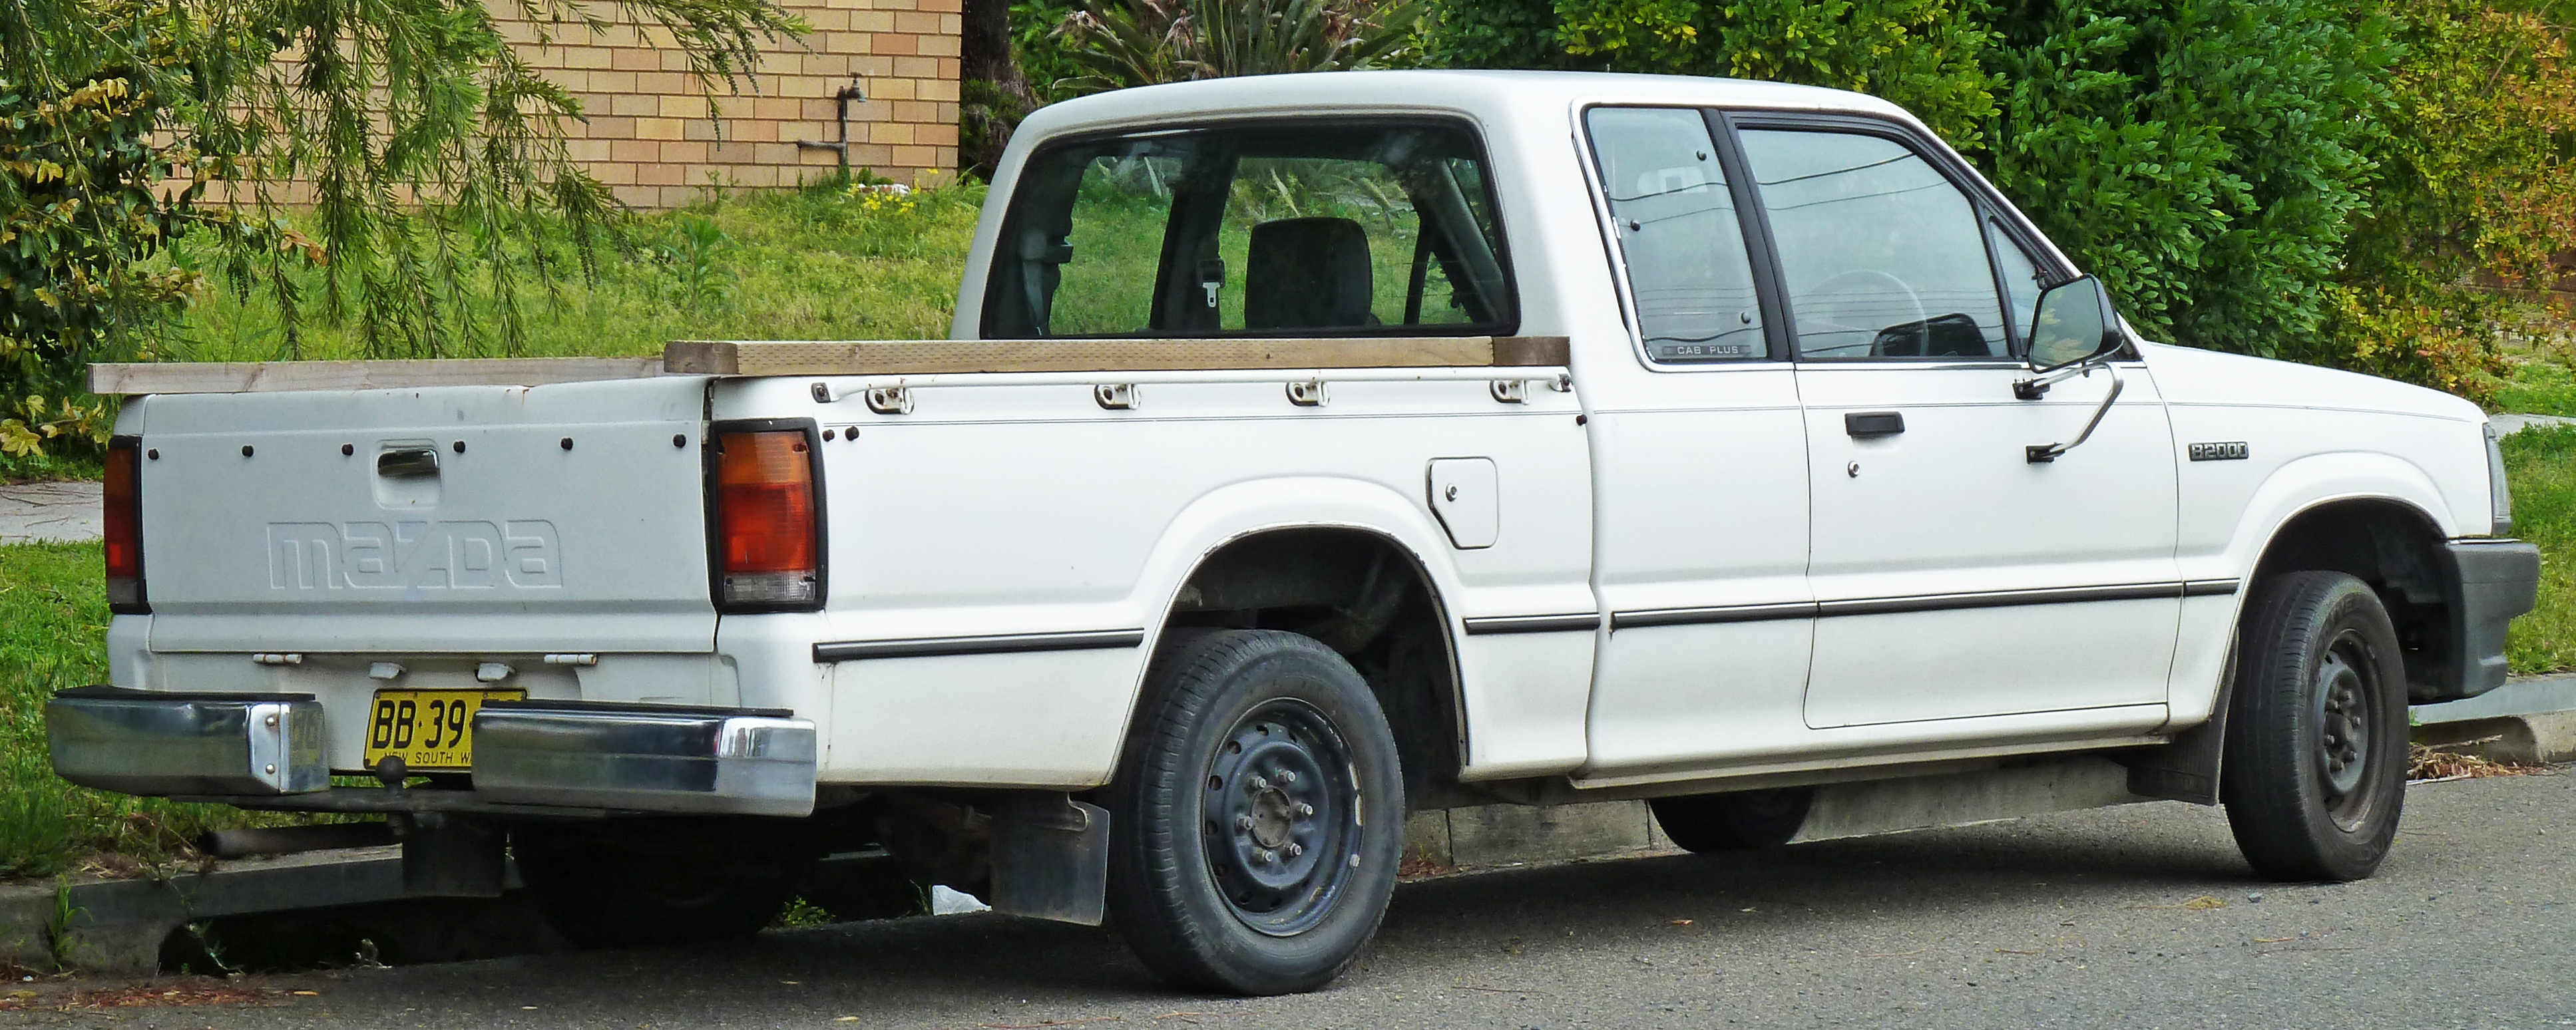 File 1985 1988 Mazda B2000 Cab Plus 2 Door Utility 02 Jpg